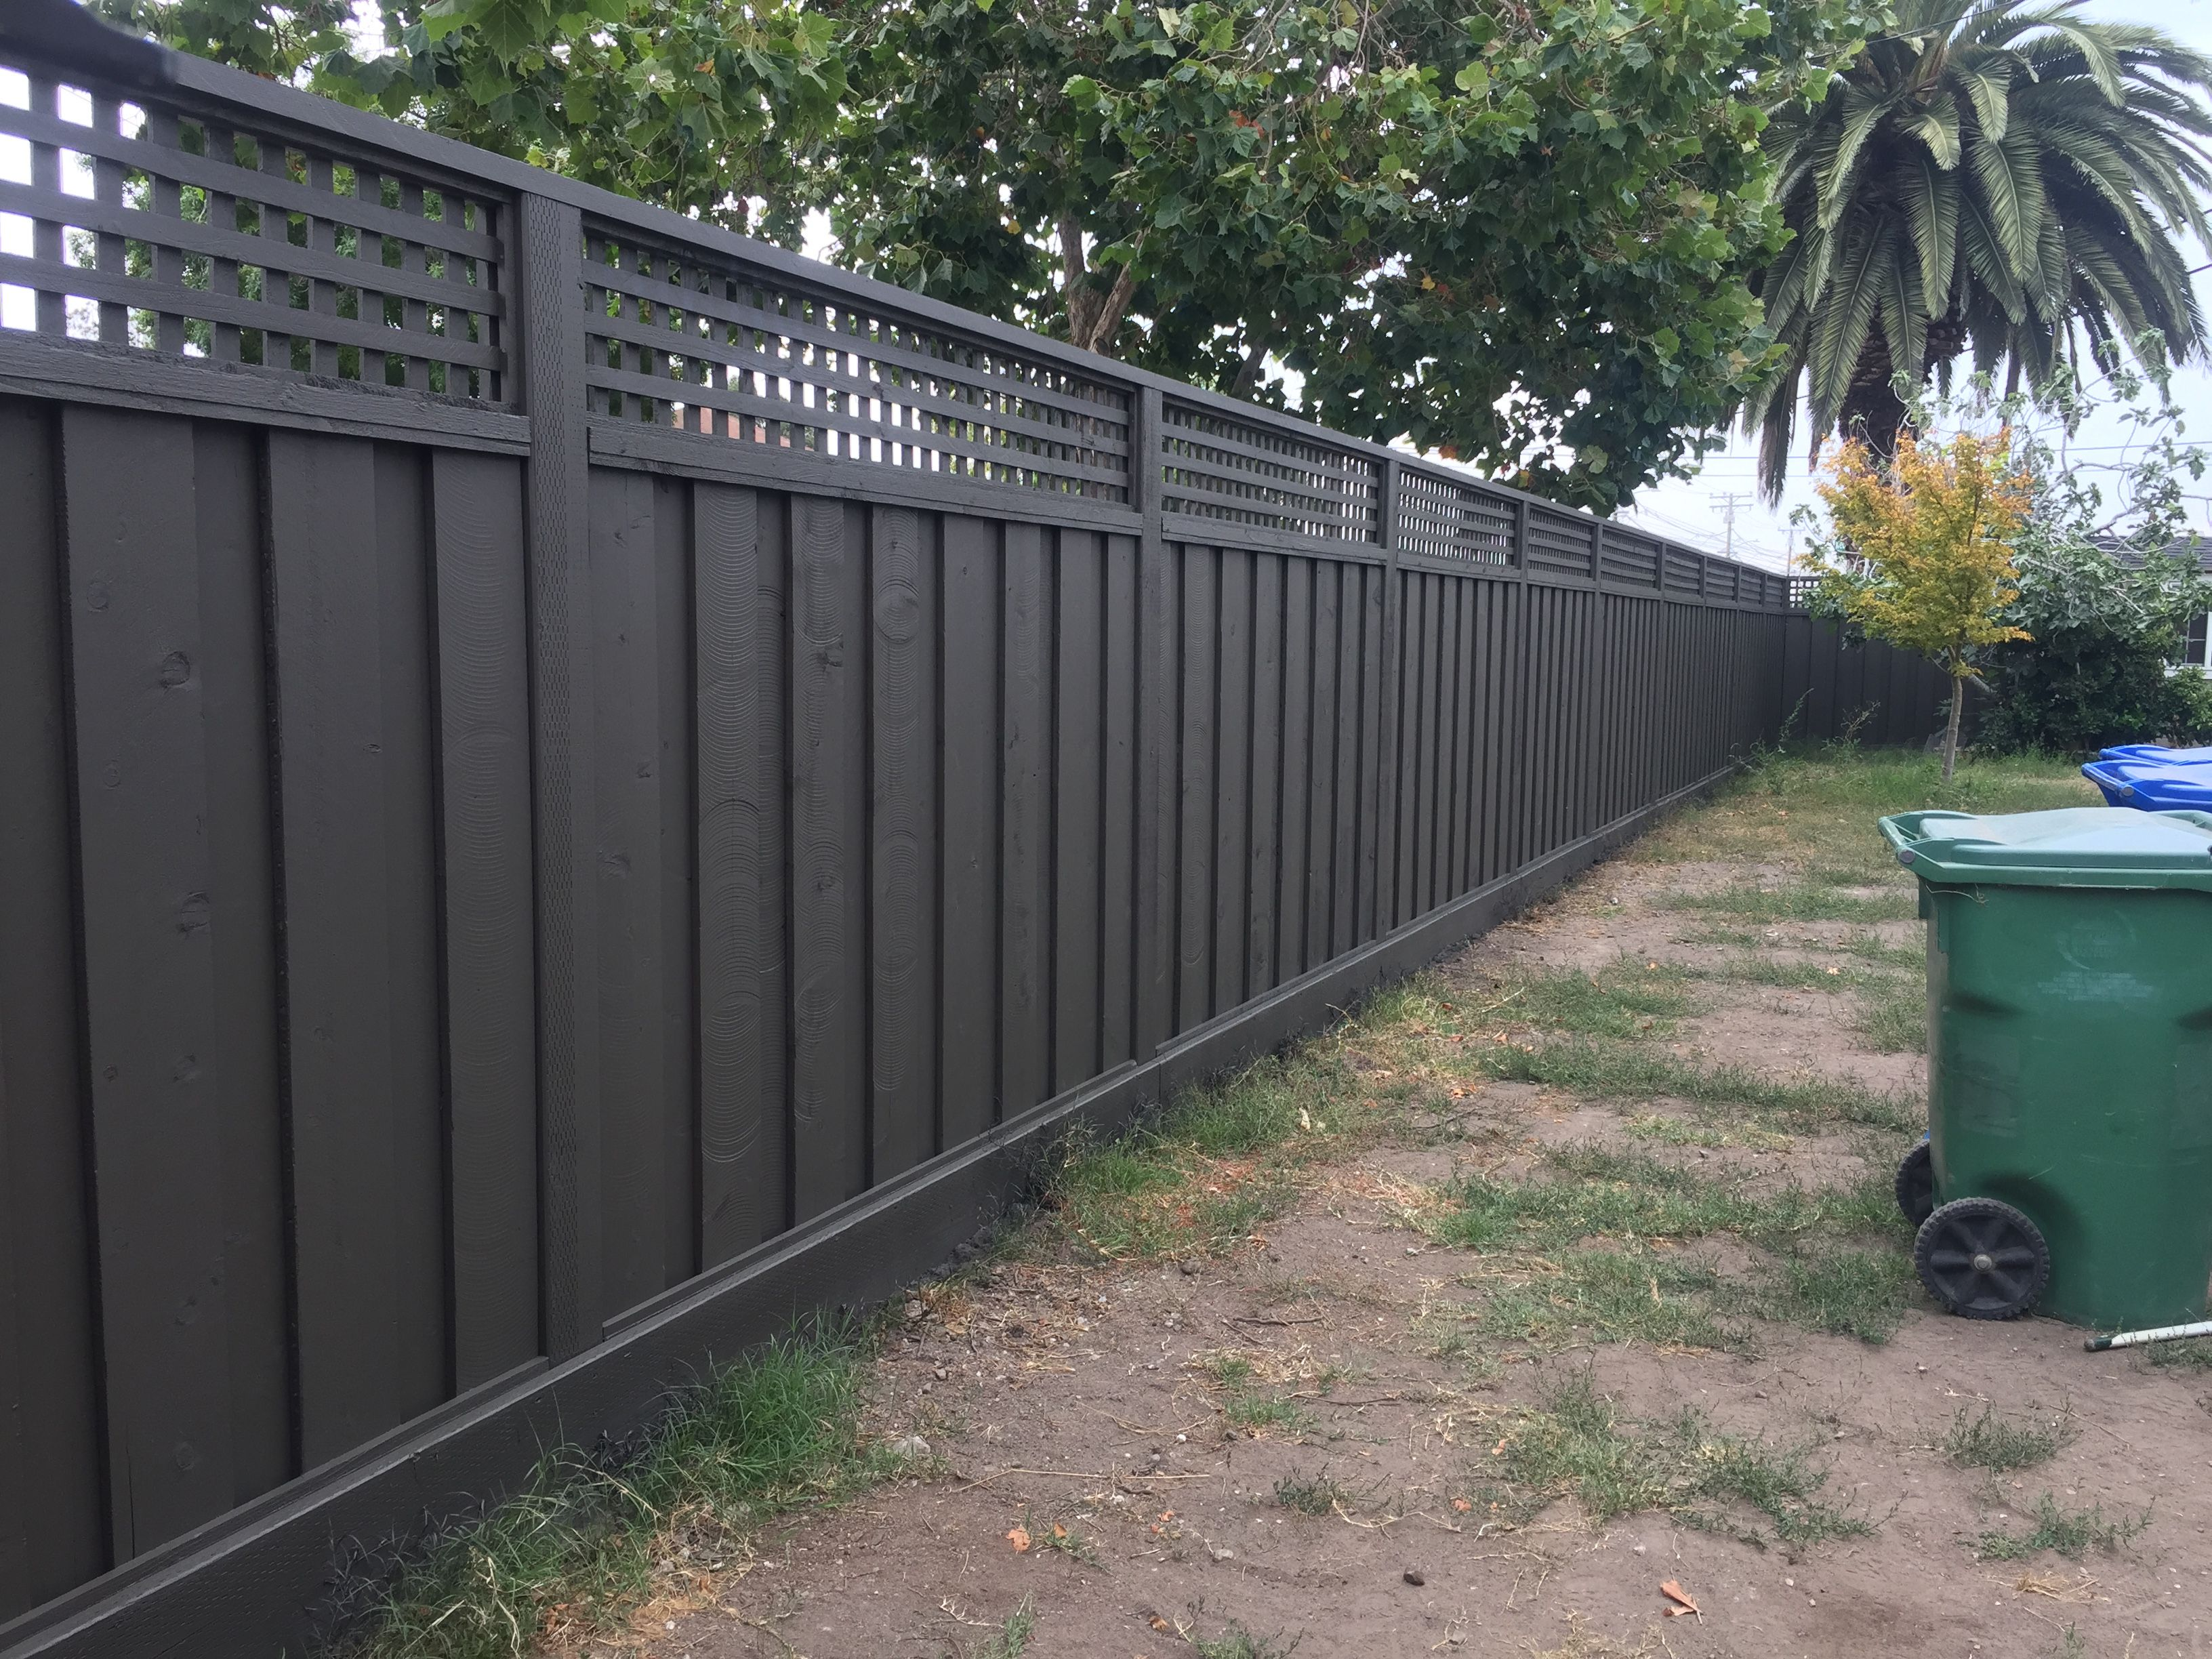 Redwood Fence With Lattice Stained With Benjamin Moore Arborcoat Solid Stain In Dragons Breath 1547 Grey Meets Fence Paint Colours Backyard Fences Fence Paint